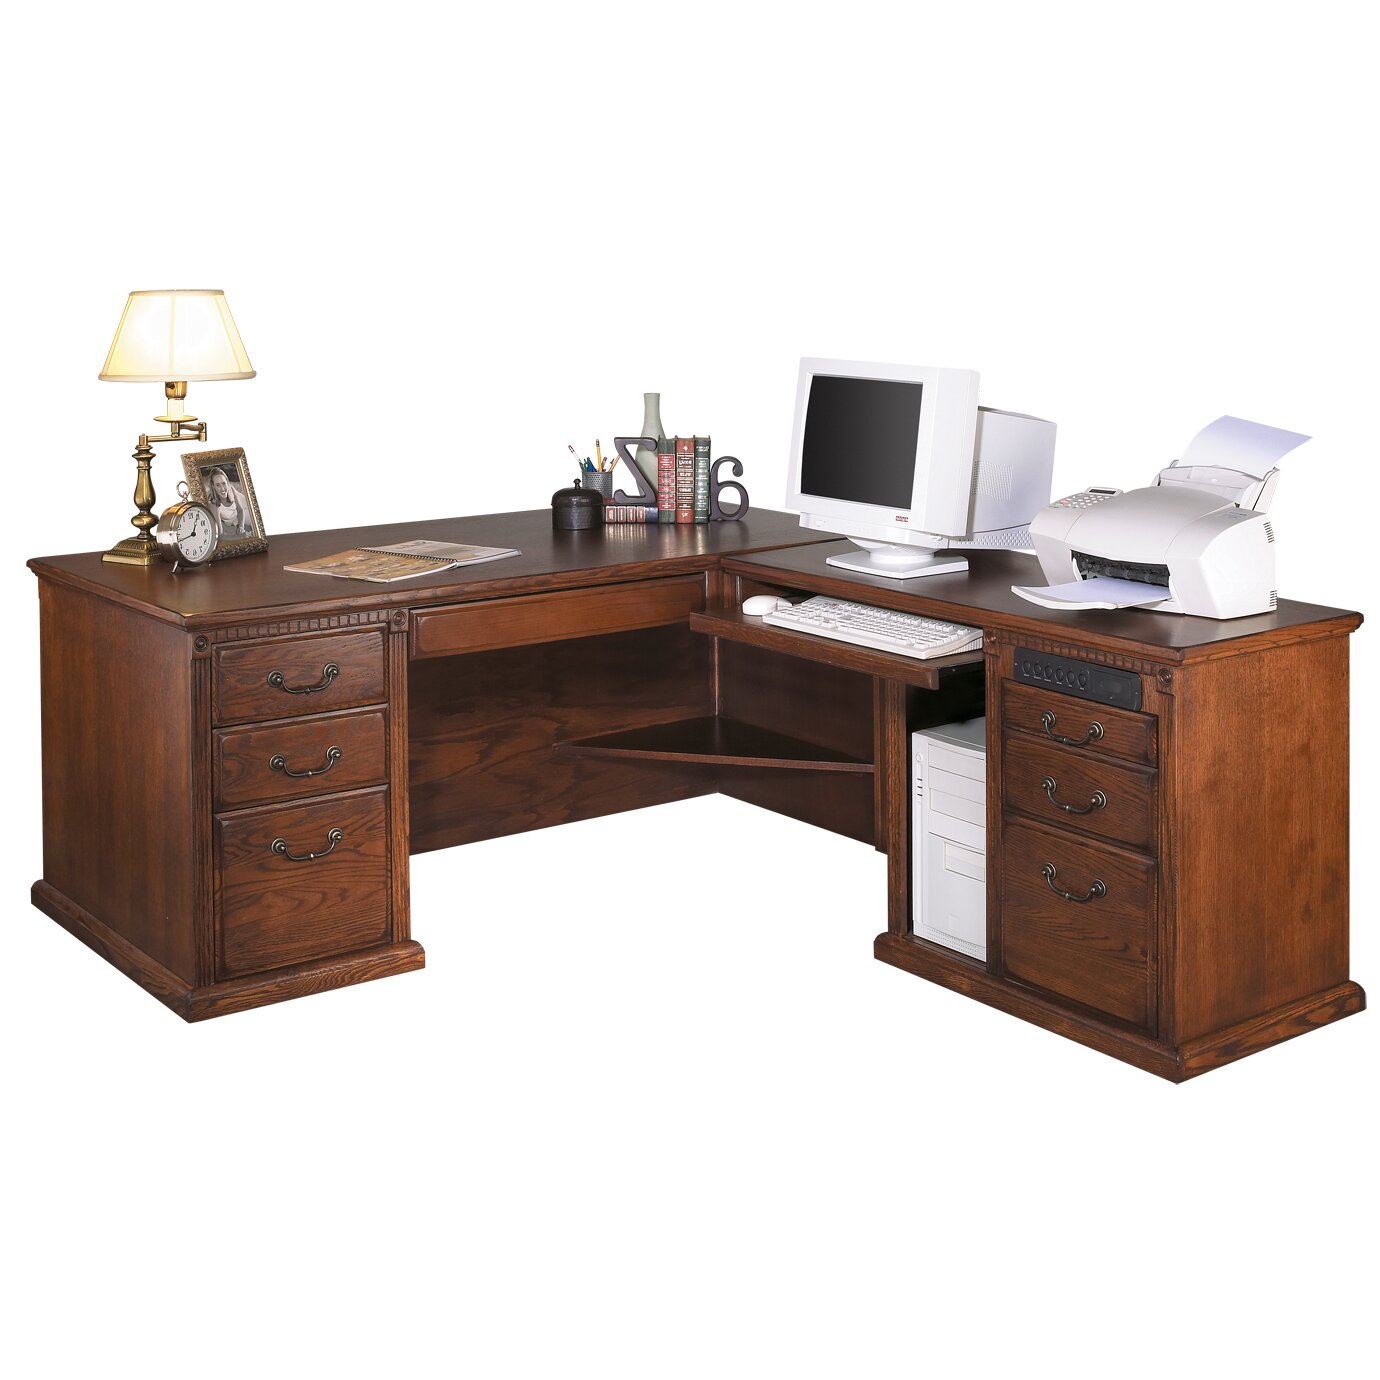 Kathy Ireland Home By Martin Furniture Huntington Oxford. Cyber Monday Desk. Kitchen Drawer Organizer Ideas. Desk That Can Be Raised And Lowered. Professional Poker Table. Cherry Computer Desk With Hutch. Padded Lap Desk. 36 Inch Folding Table. Rustic Desk Lamps